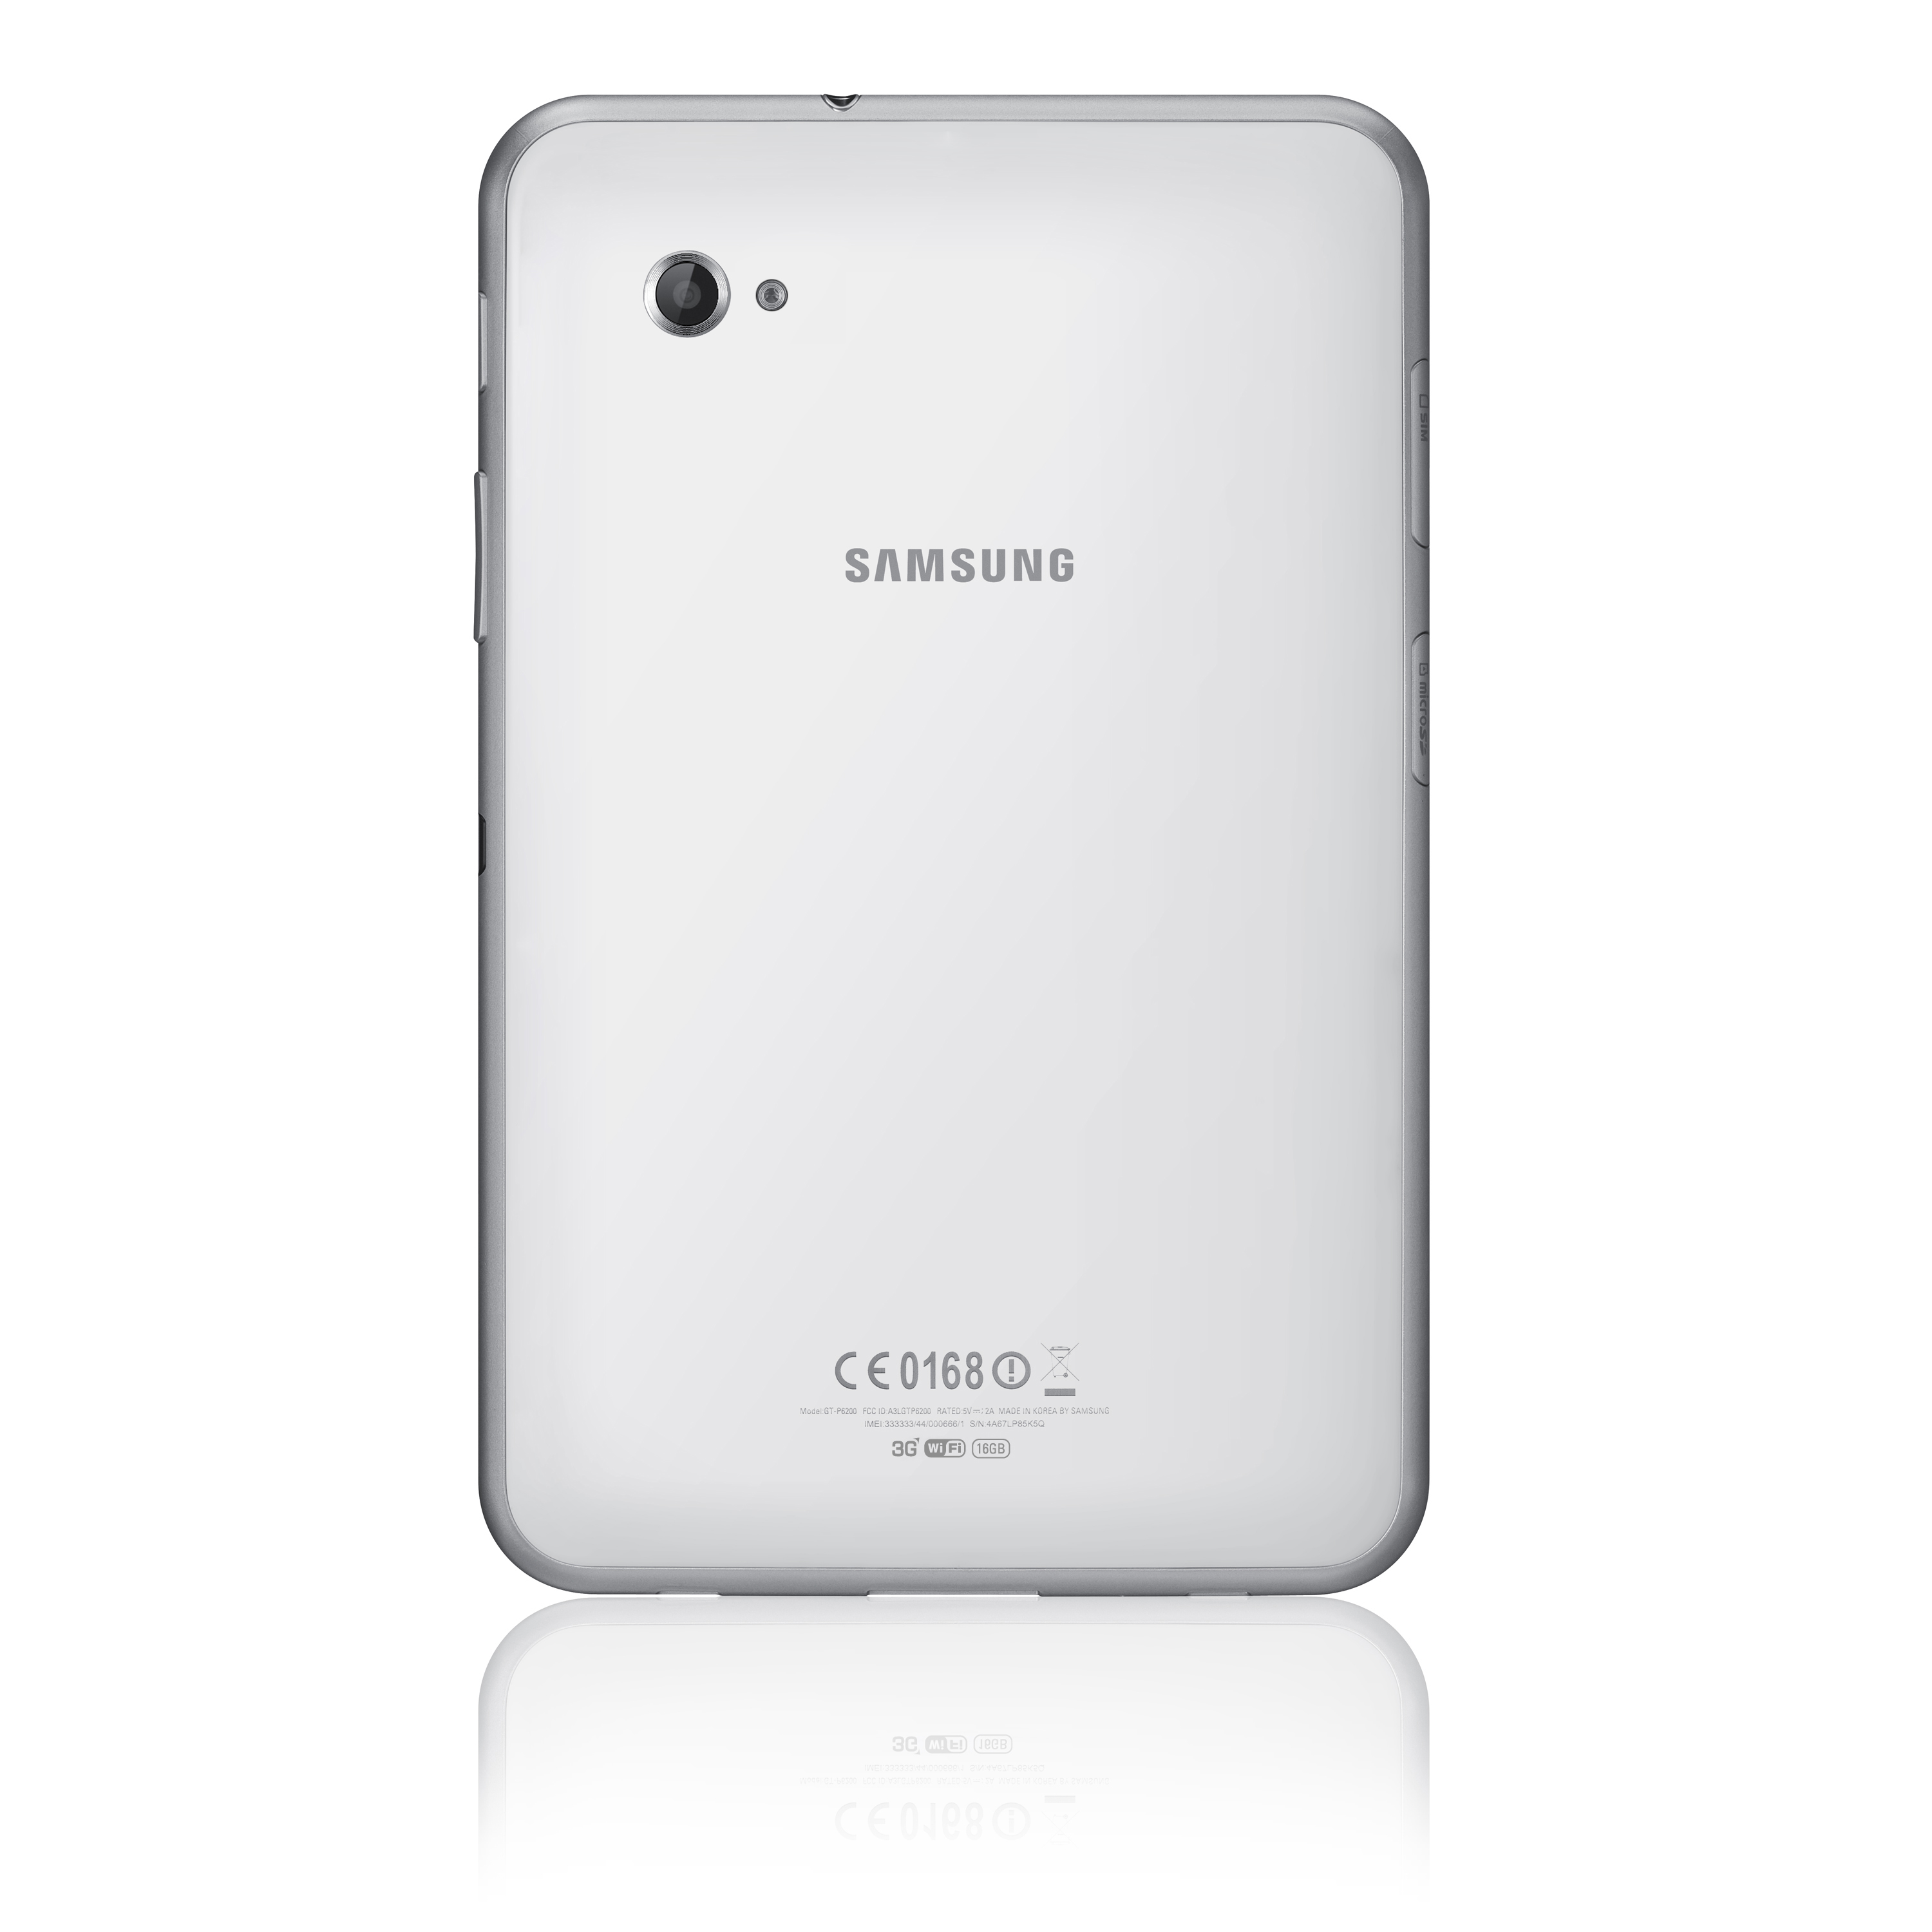 SAMSUNG GALAXY TAB 7.0 PLUS PRODUCT IMAGE WHITE BACK image ...